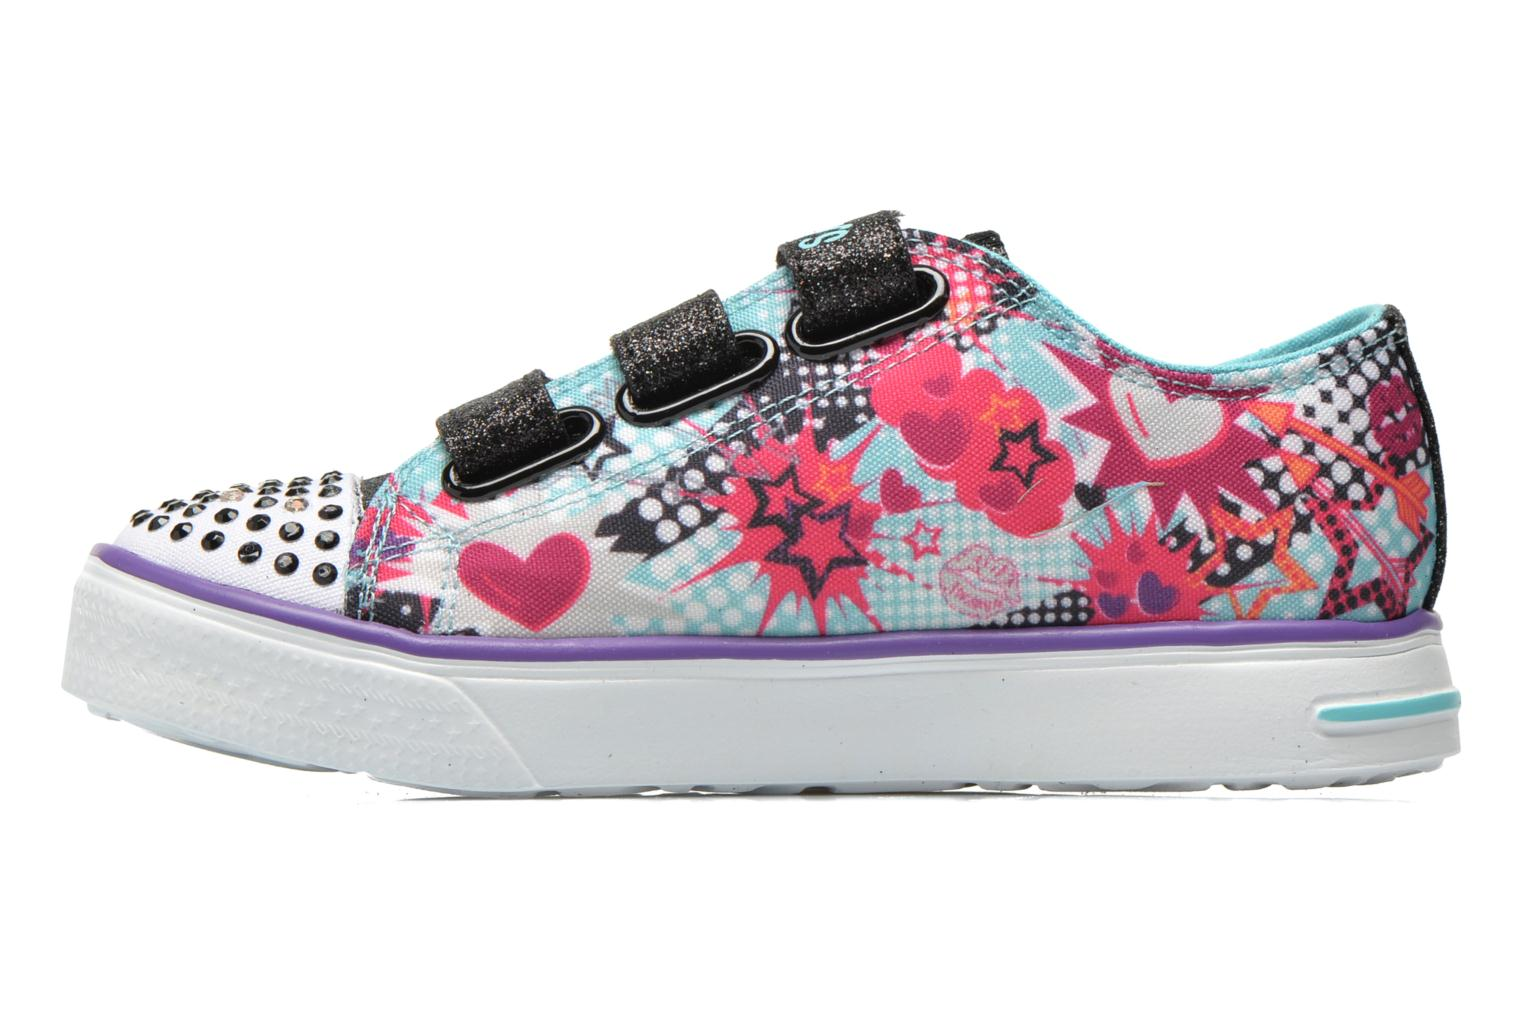 Turquoise Skechers Twinkle Breeze Pop-Tastic (Multicolore)